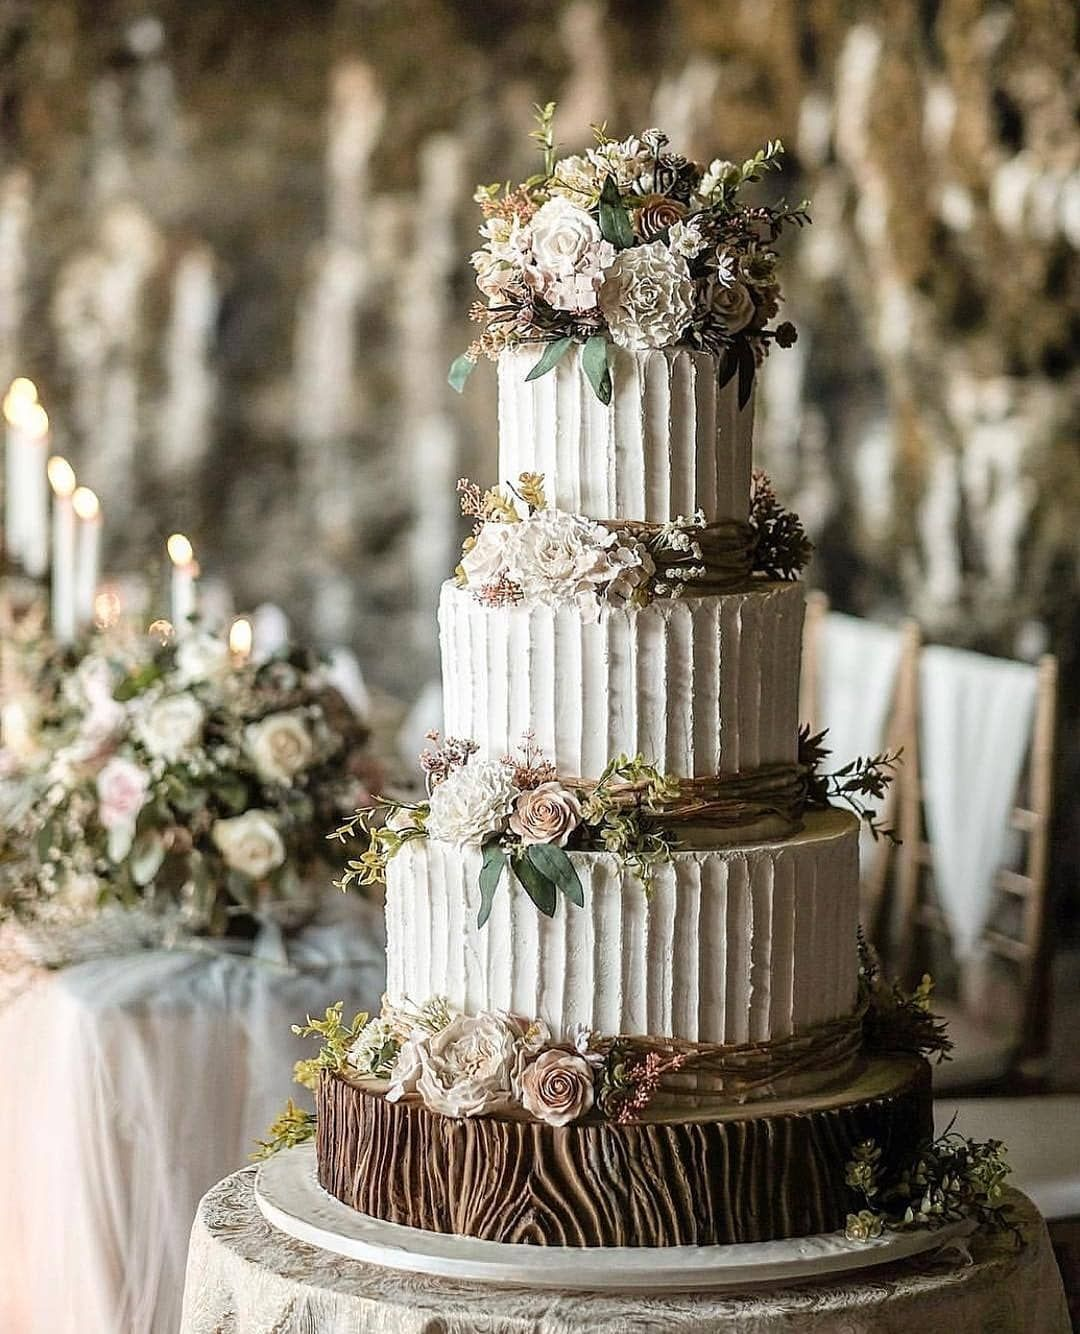 Divine Wedding Flowers: Rustic And Romantic, This Tiered Cake Adorned With Sugar